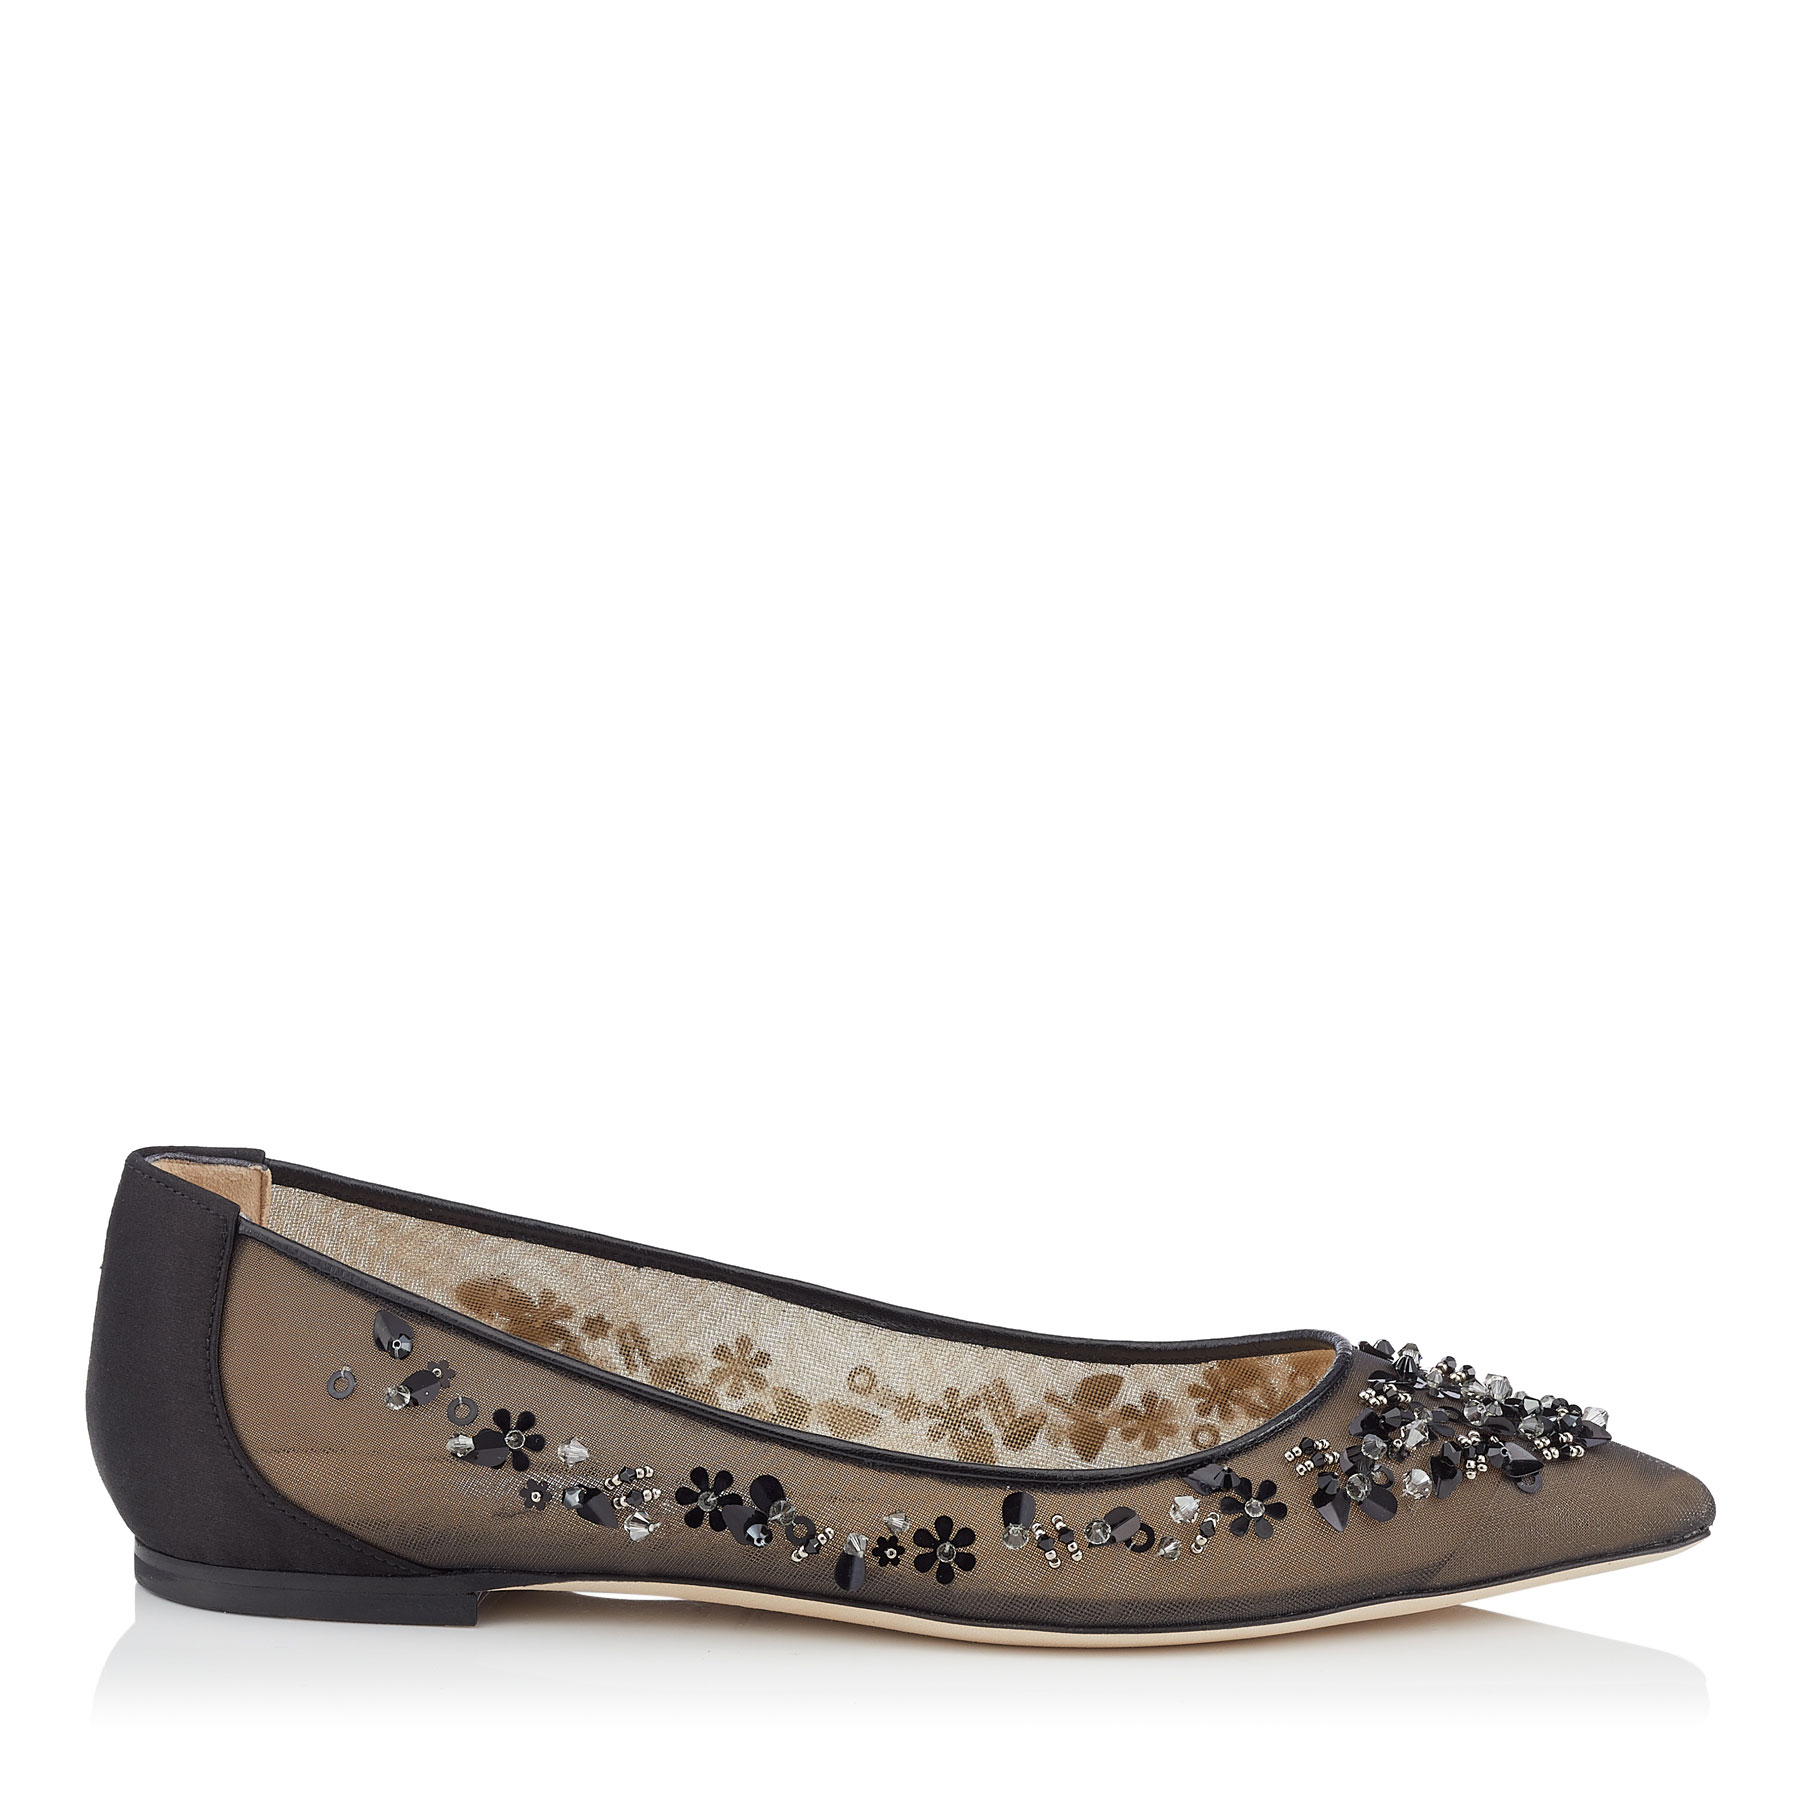 ROMY FLAT Black Mix Satin and Mesh Pointy Toe Flats with Sequin Embroidery by Jimmy Choo